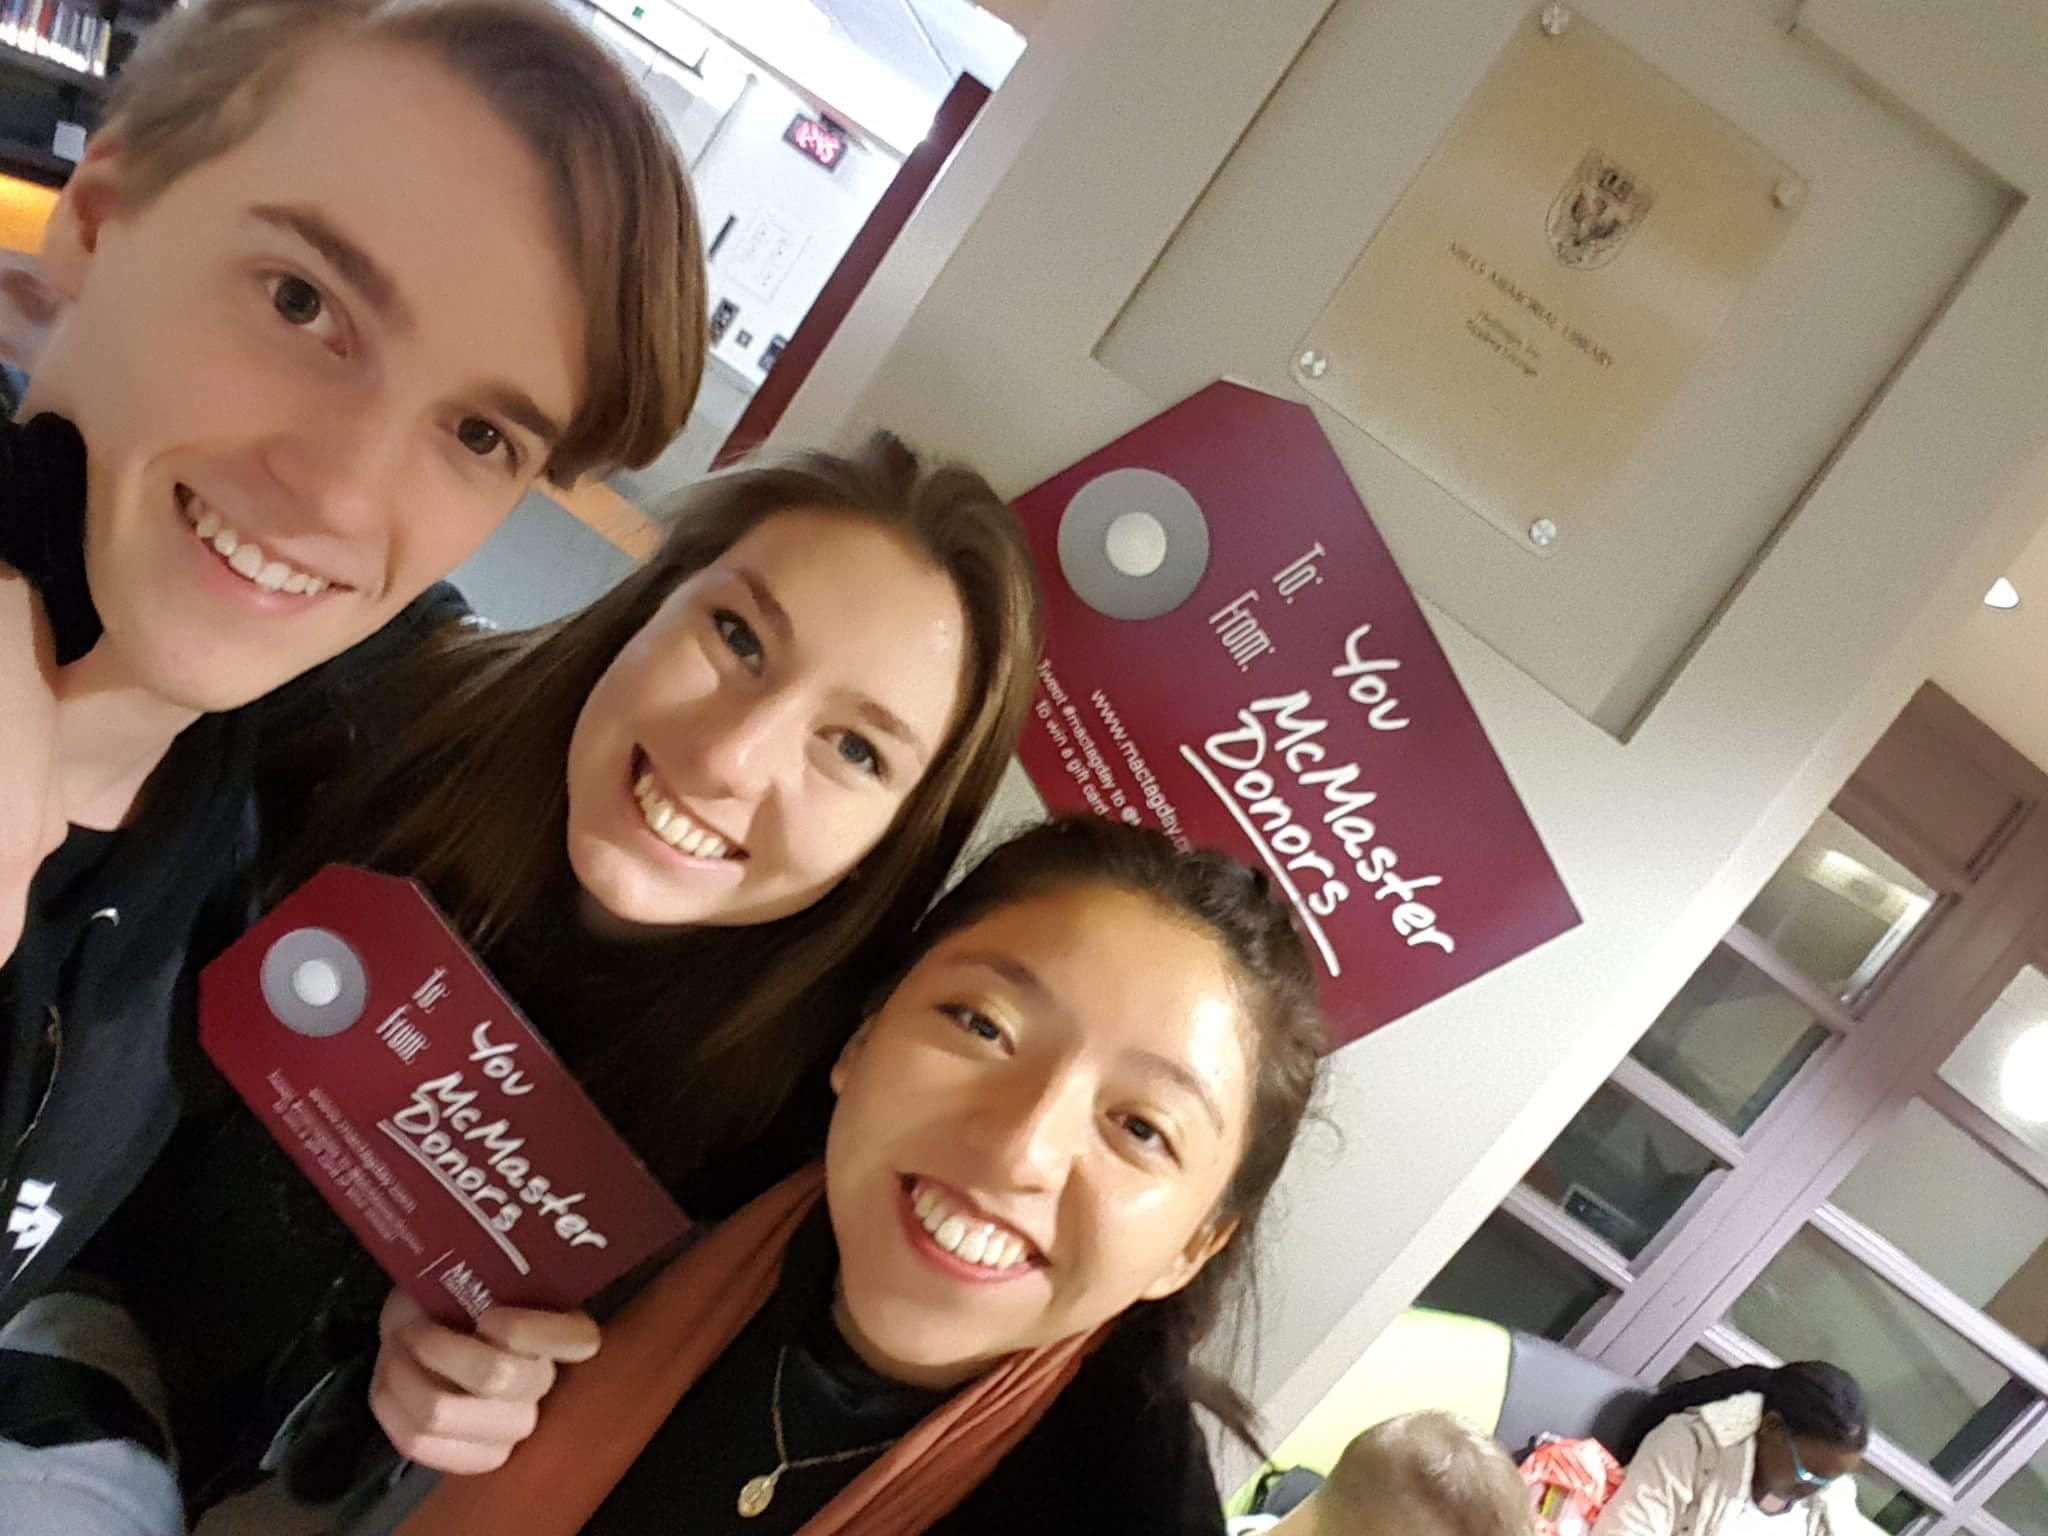 THANK YOU MCMASTER DONORS @McMasterAlumni #MacTagDay https://t.co/ItZC0k0xkN